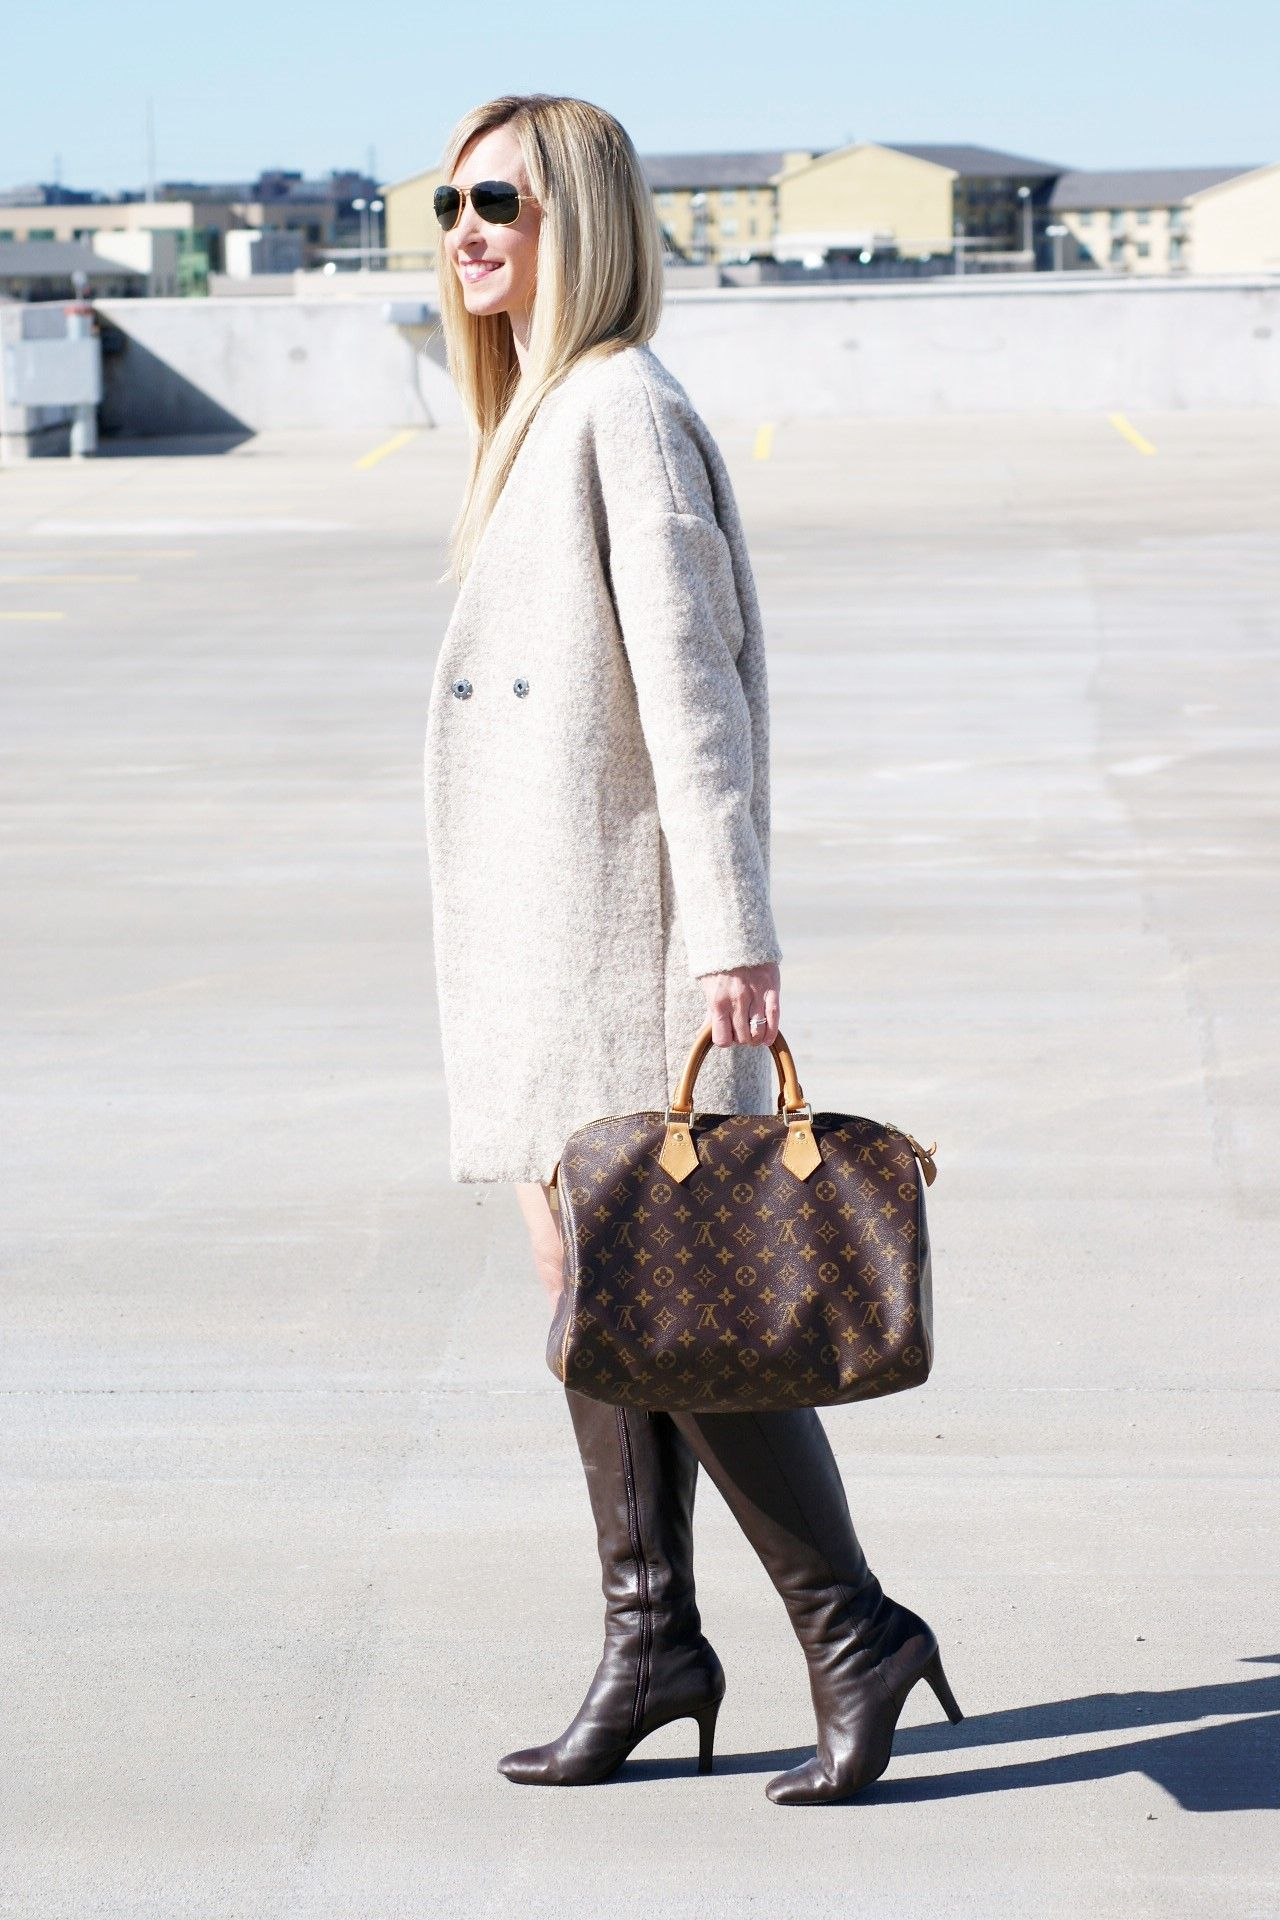 c814b4ac9 Louis Vuitton Speedy 35. Tall boots. Great Winter outfit!! Check out  2degreesofstyle.com to find out where to buy 2 coats for $50!!